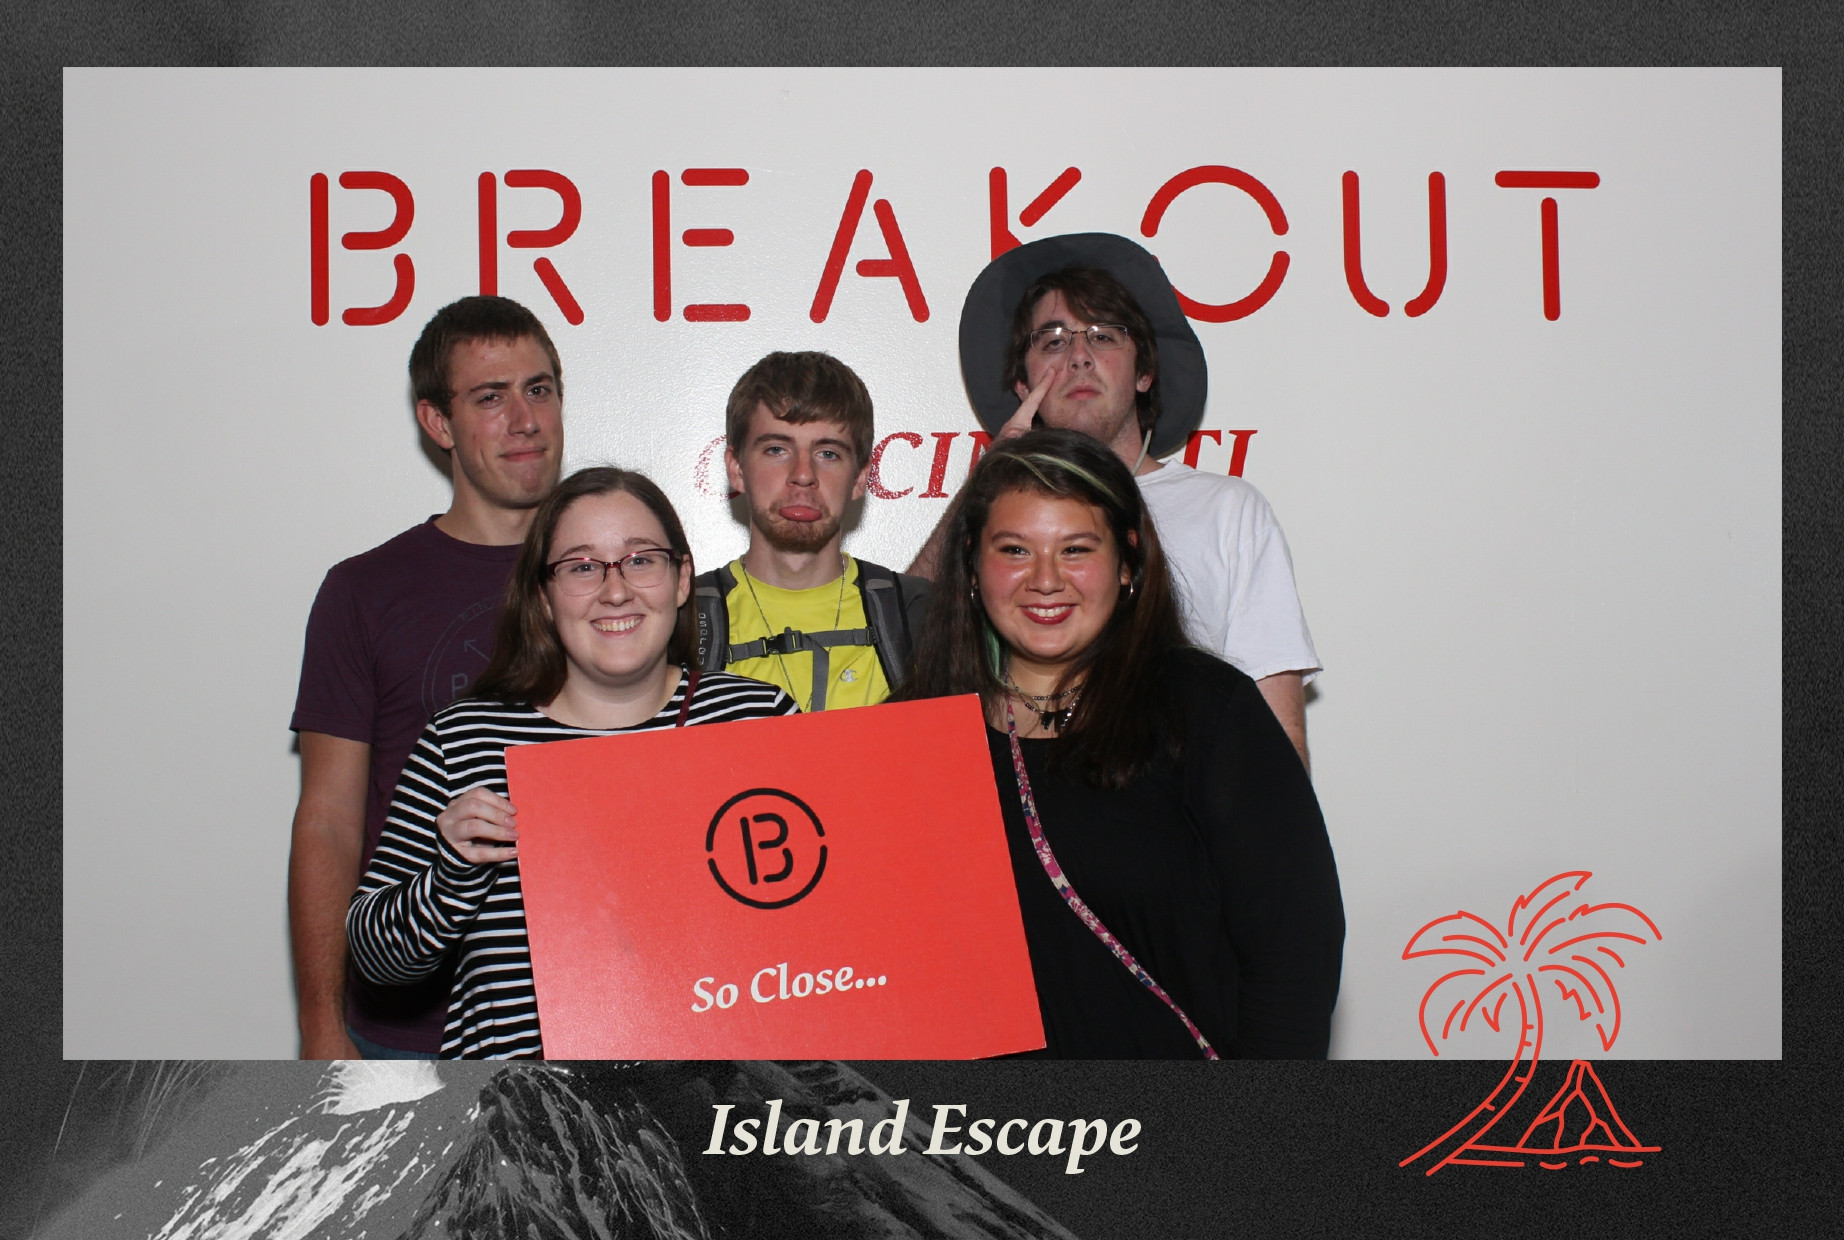 One of the teams at 2017's Extravaganza. They lost... Photo by Breakout Games.